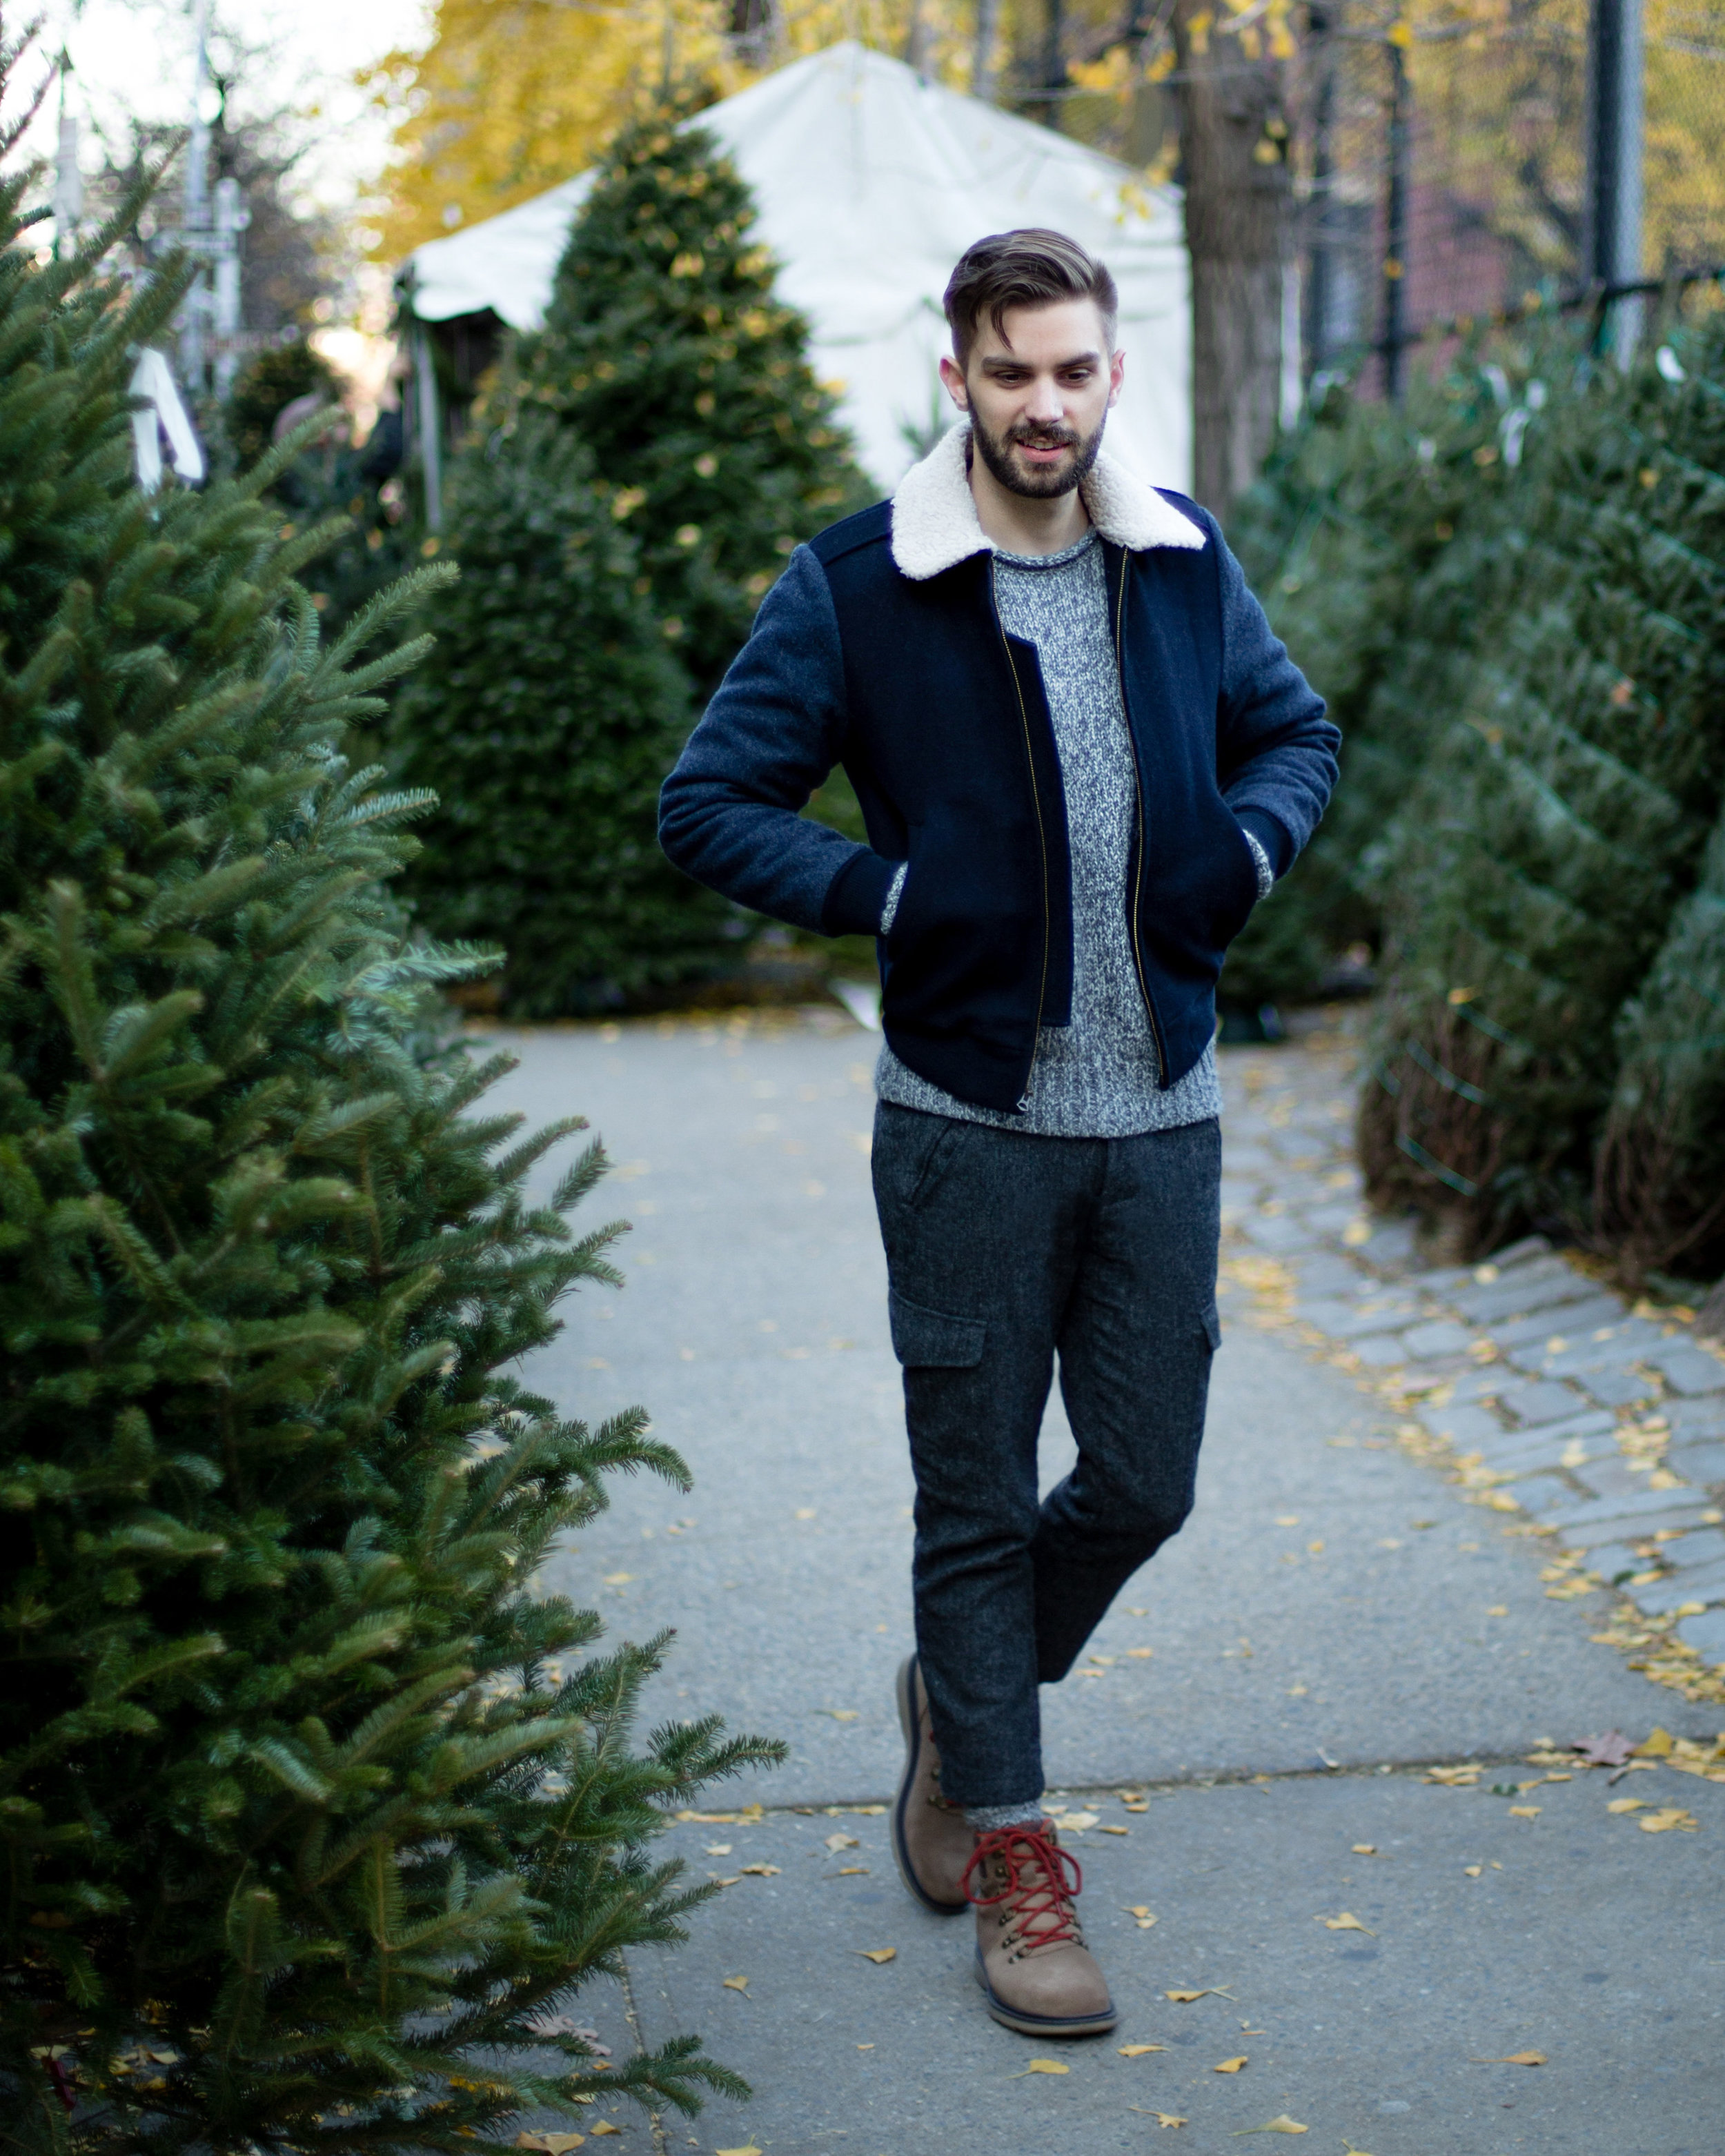 How to dress Holiday Casual vs. Holiday Party